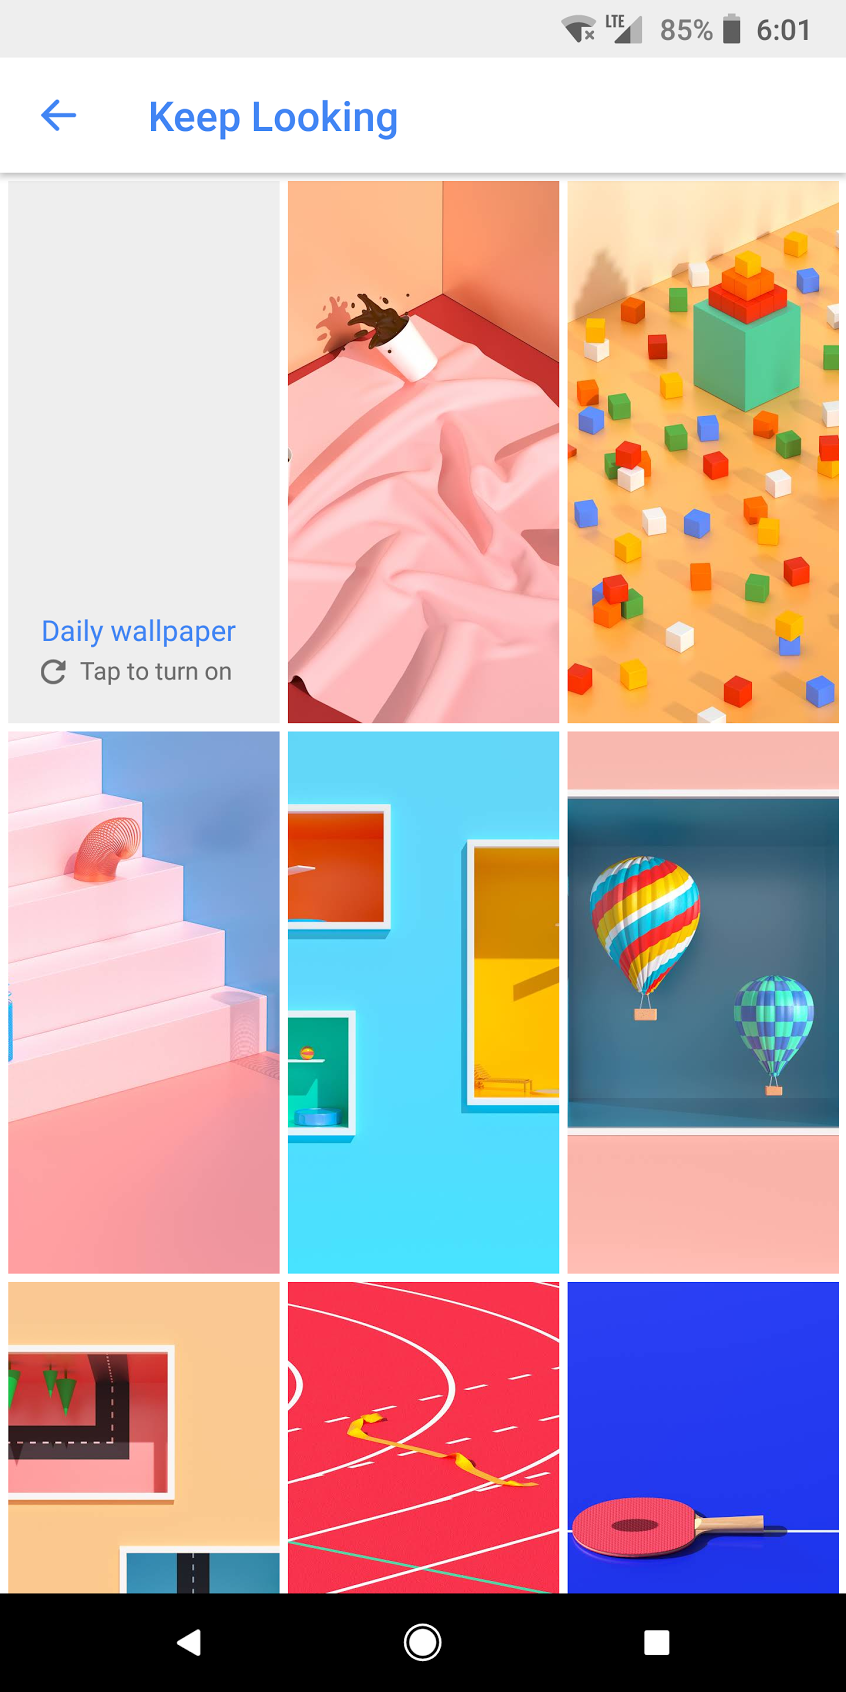 How To Set Up Daily Wallpaper On Google Pixel 2 And 2 Xl 9to5google